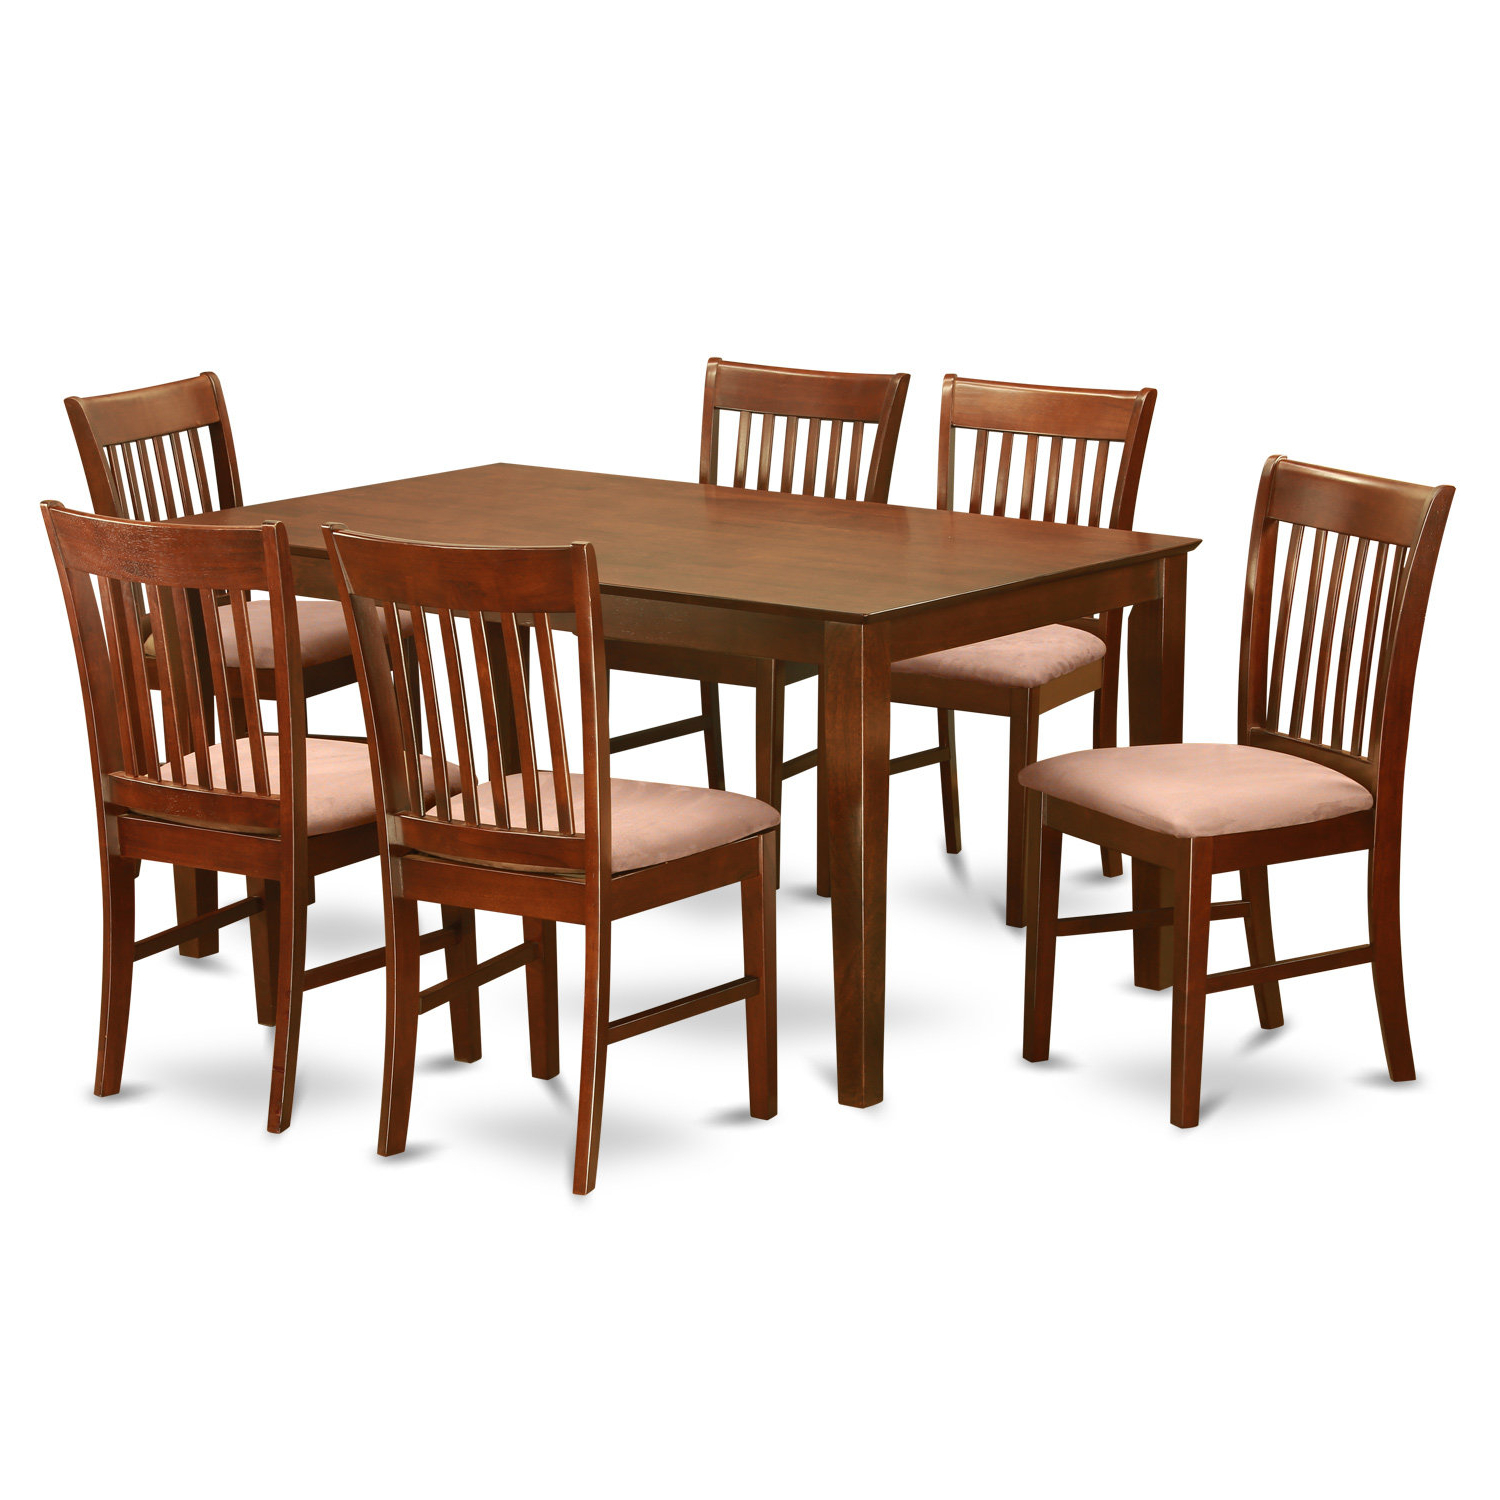 Smyrna 7 Piece Dining Set With Well Known Smyrna 3 Piece Dining Sets (View 10 of 20)